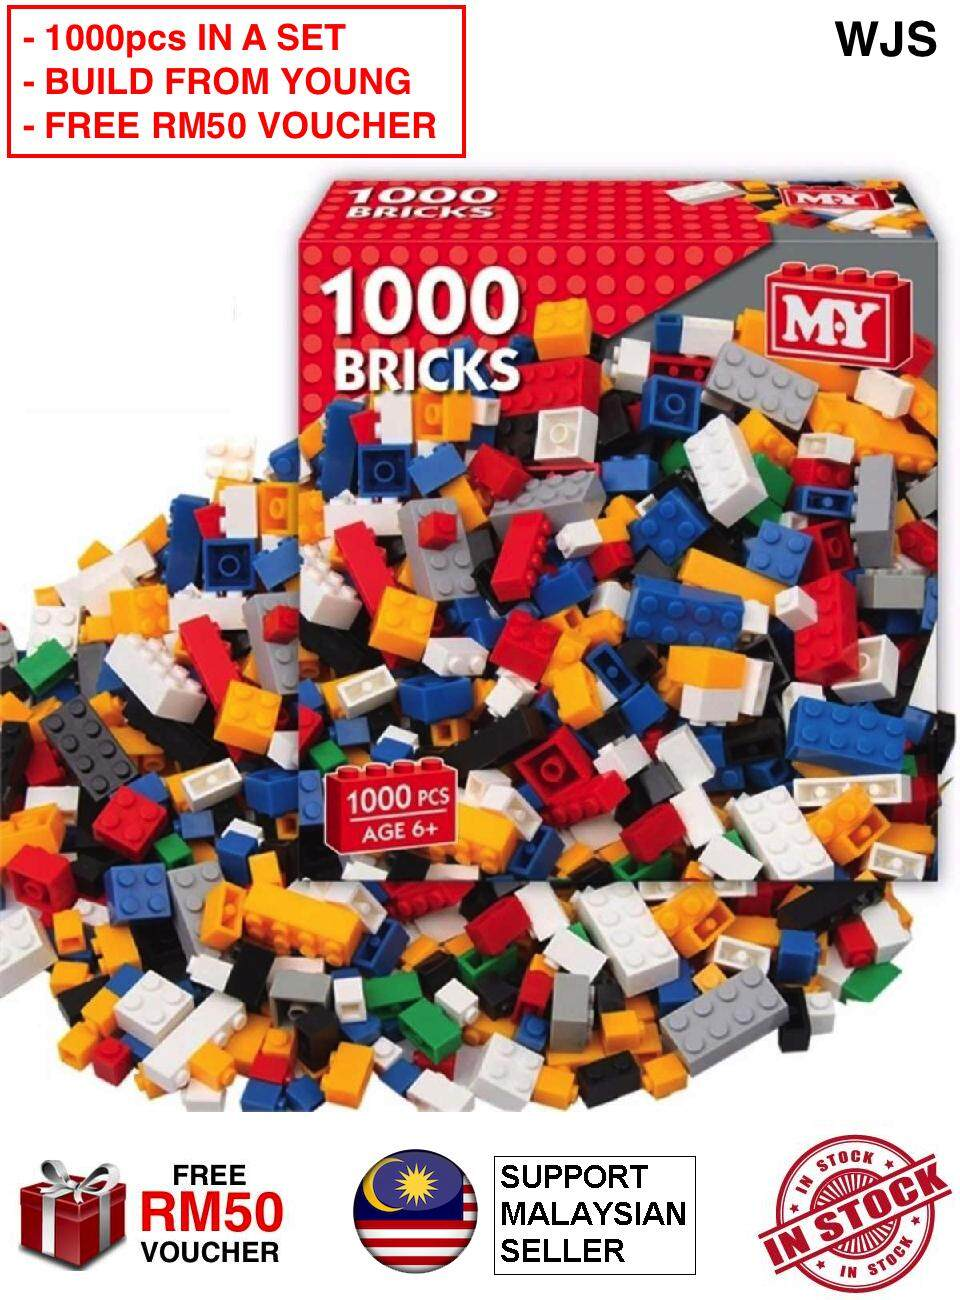 (BUILD FROM YOUNG) WJS 1000 Piece 1000pcs 1000 pcs Building Block Set Bricks Building Blocks Toy Early Education Early Learning Lego Set Young Engineer Engineering Construction MULTICOLOR [FREE RM 50 VOUCHER] Toys for boys